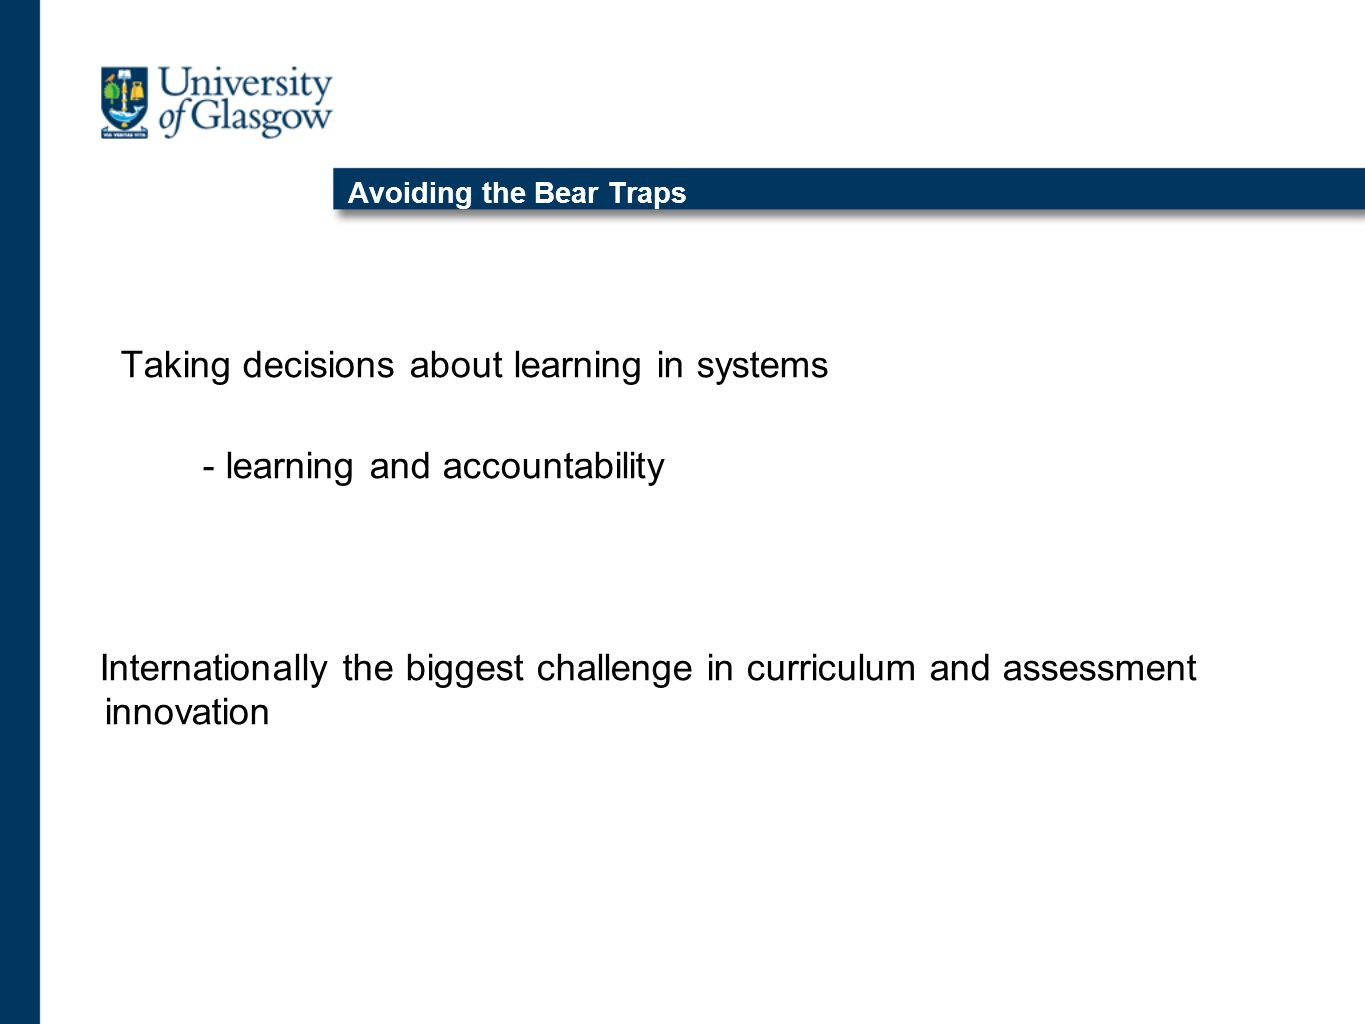 Avoiding the Bear Traps Taking decisions about learning in systems - learning and accountability Internationally the biggest challenge in curriculum and assessment innovation